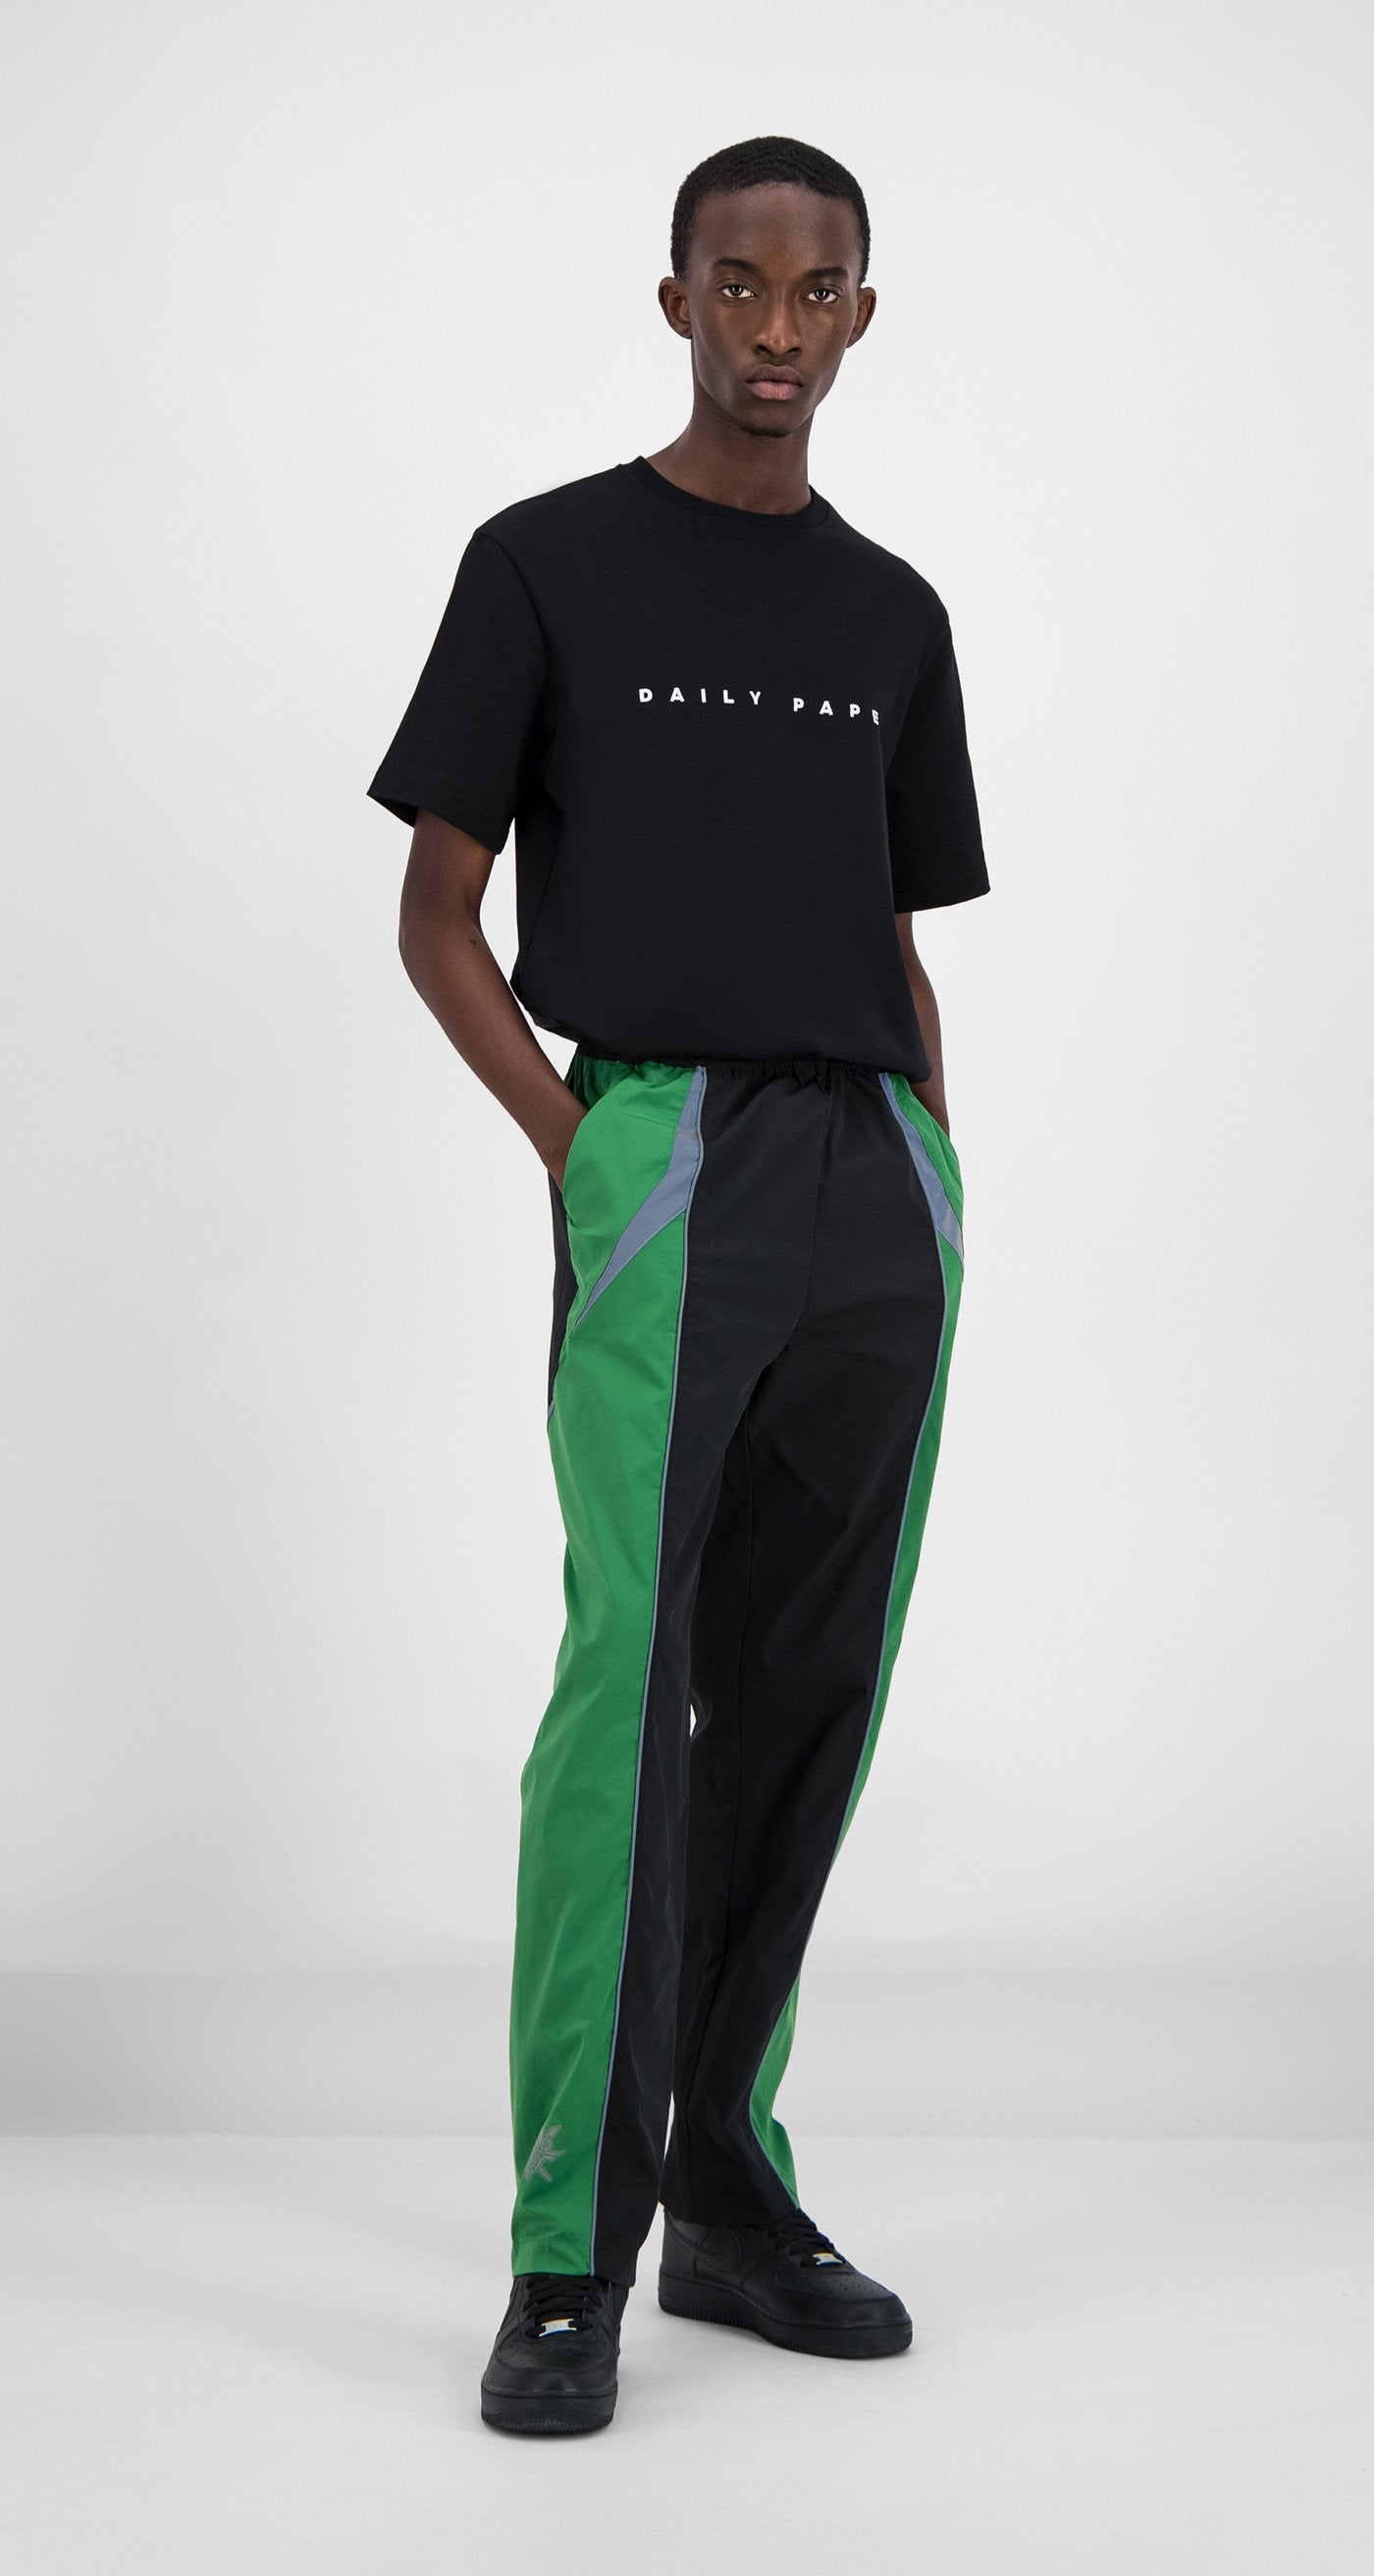 Daily Paper - Daily Paper x STARBOY Green Guka Pants Men